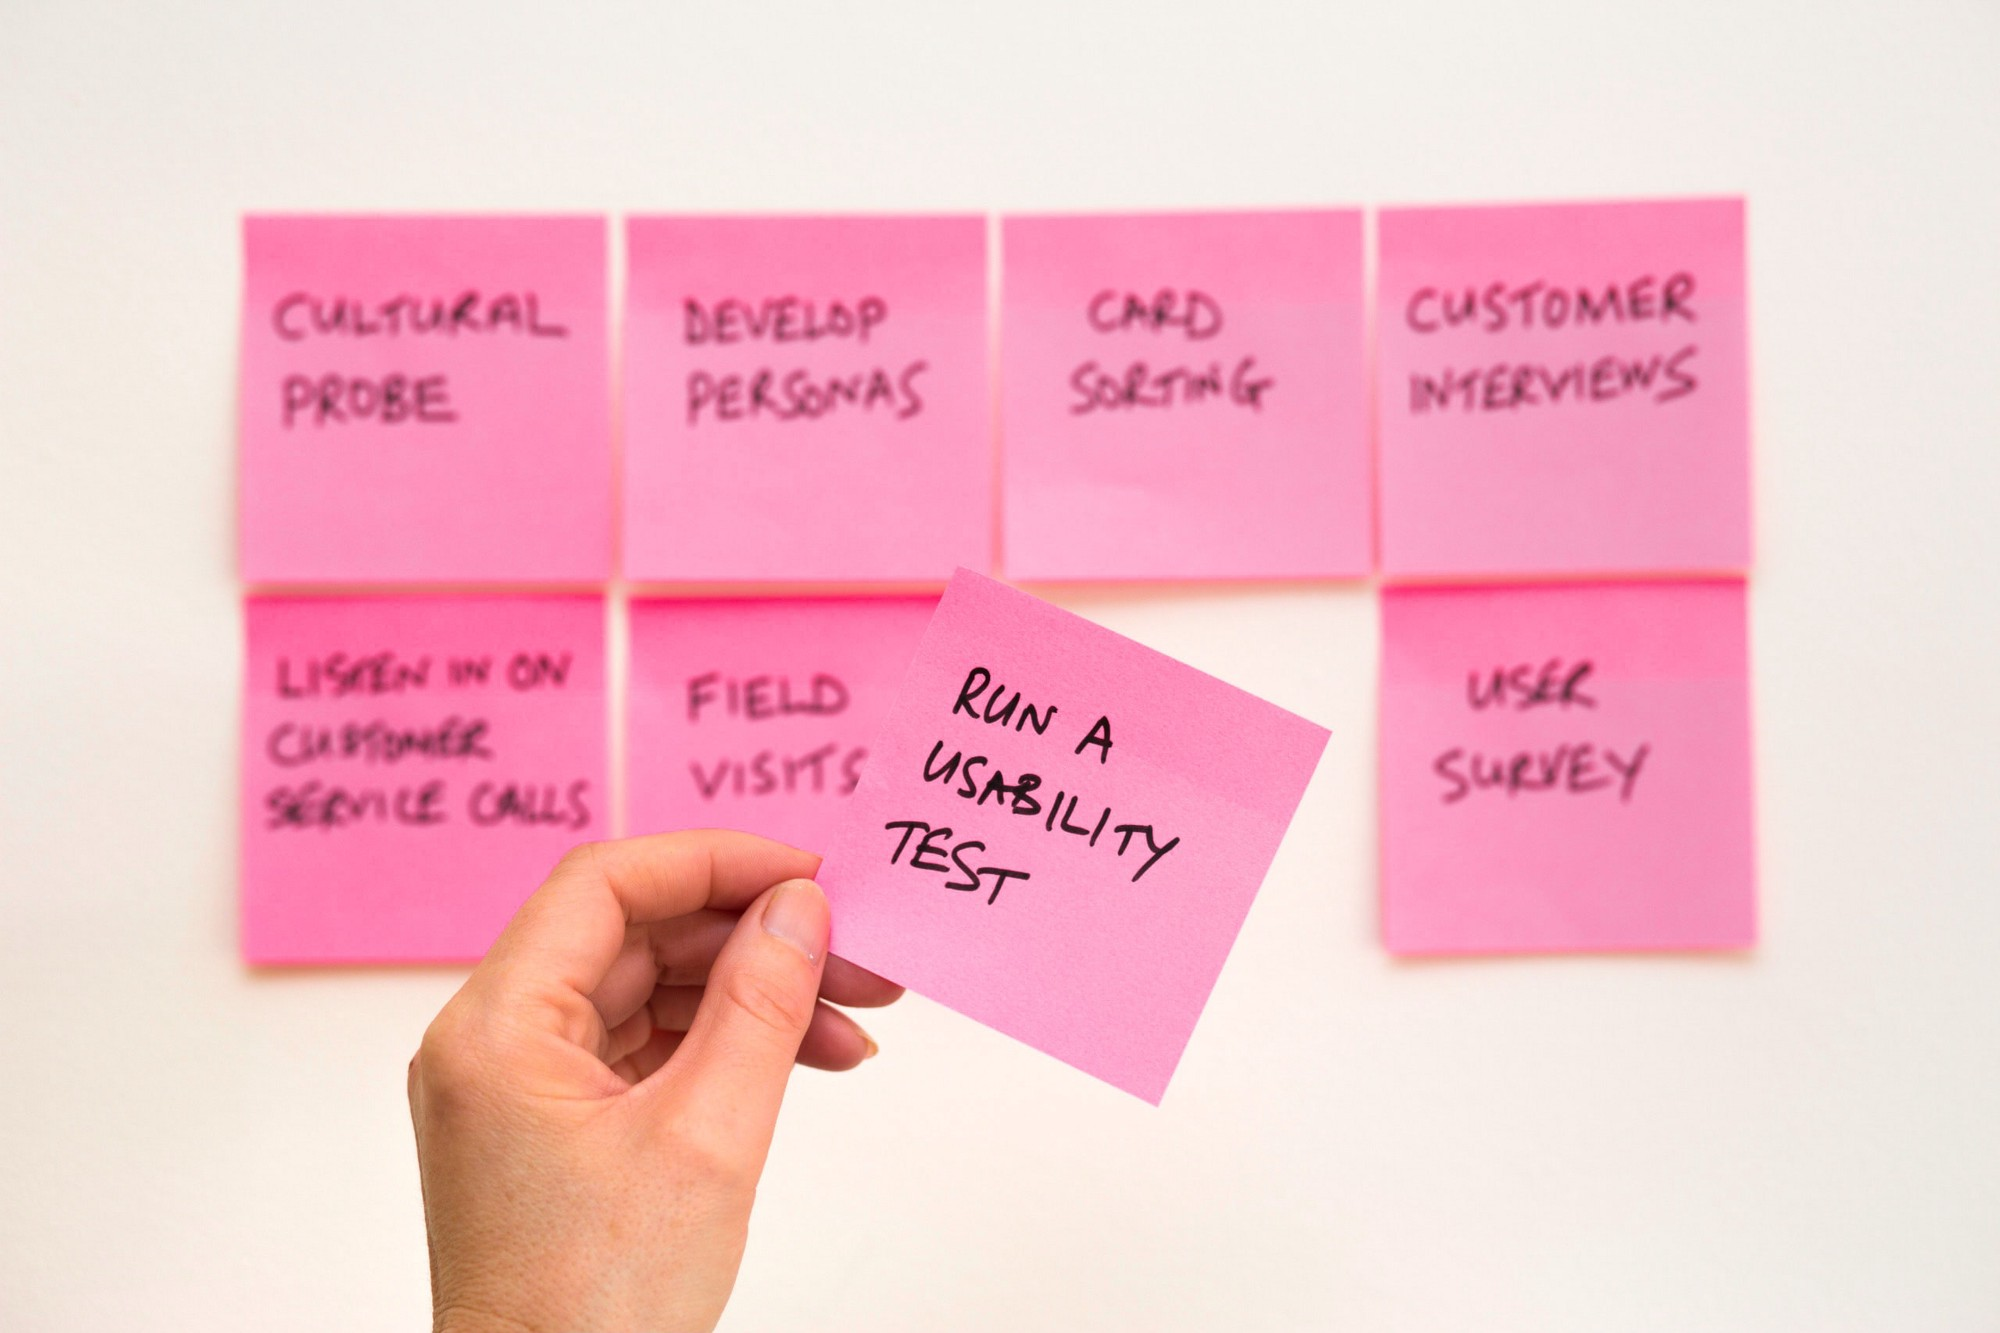 Usability tests are mostly done toward the end of the design process when you have either a paper or digital prototype.